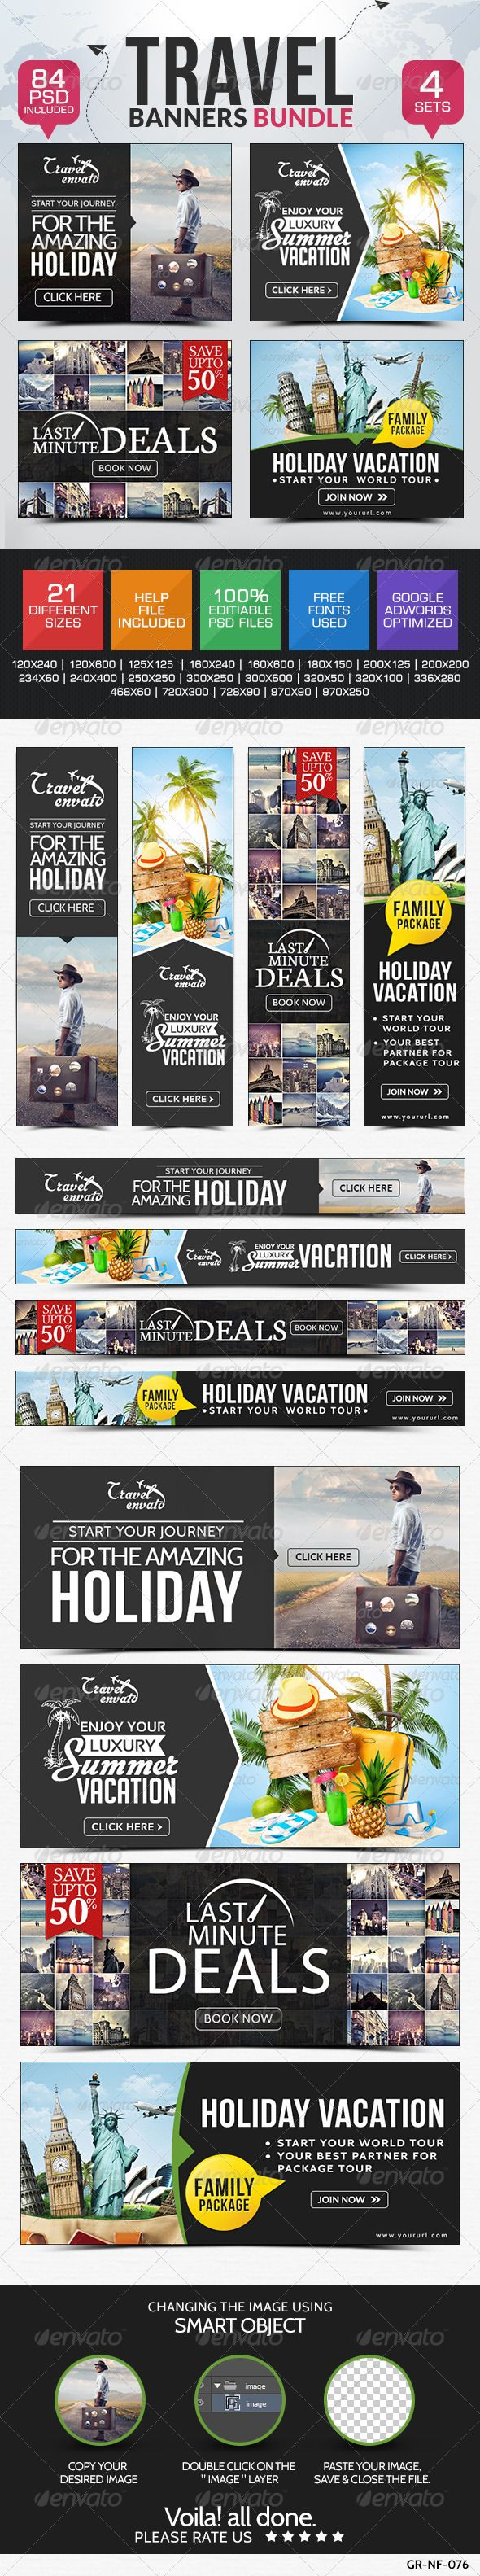 Travel Banner Sets Bundle - 4 Sets Template PSD | Buy and Download…